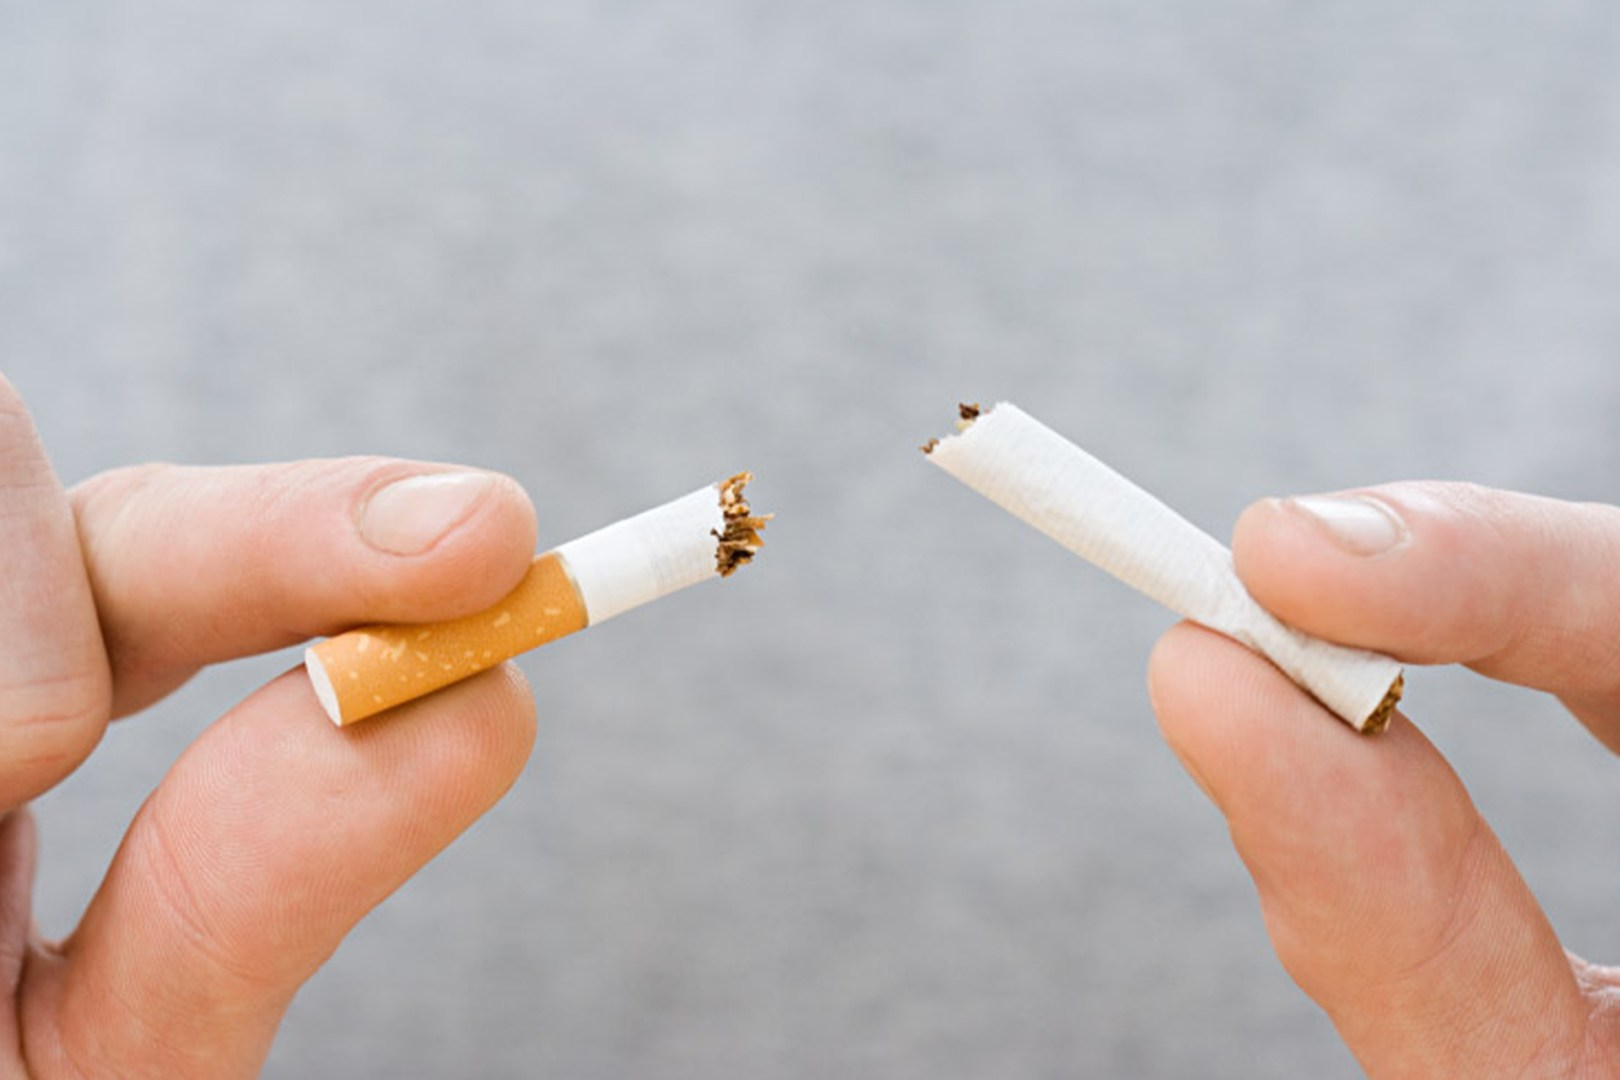 A closeup of two hands breaking a cigarette in two.